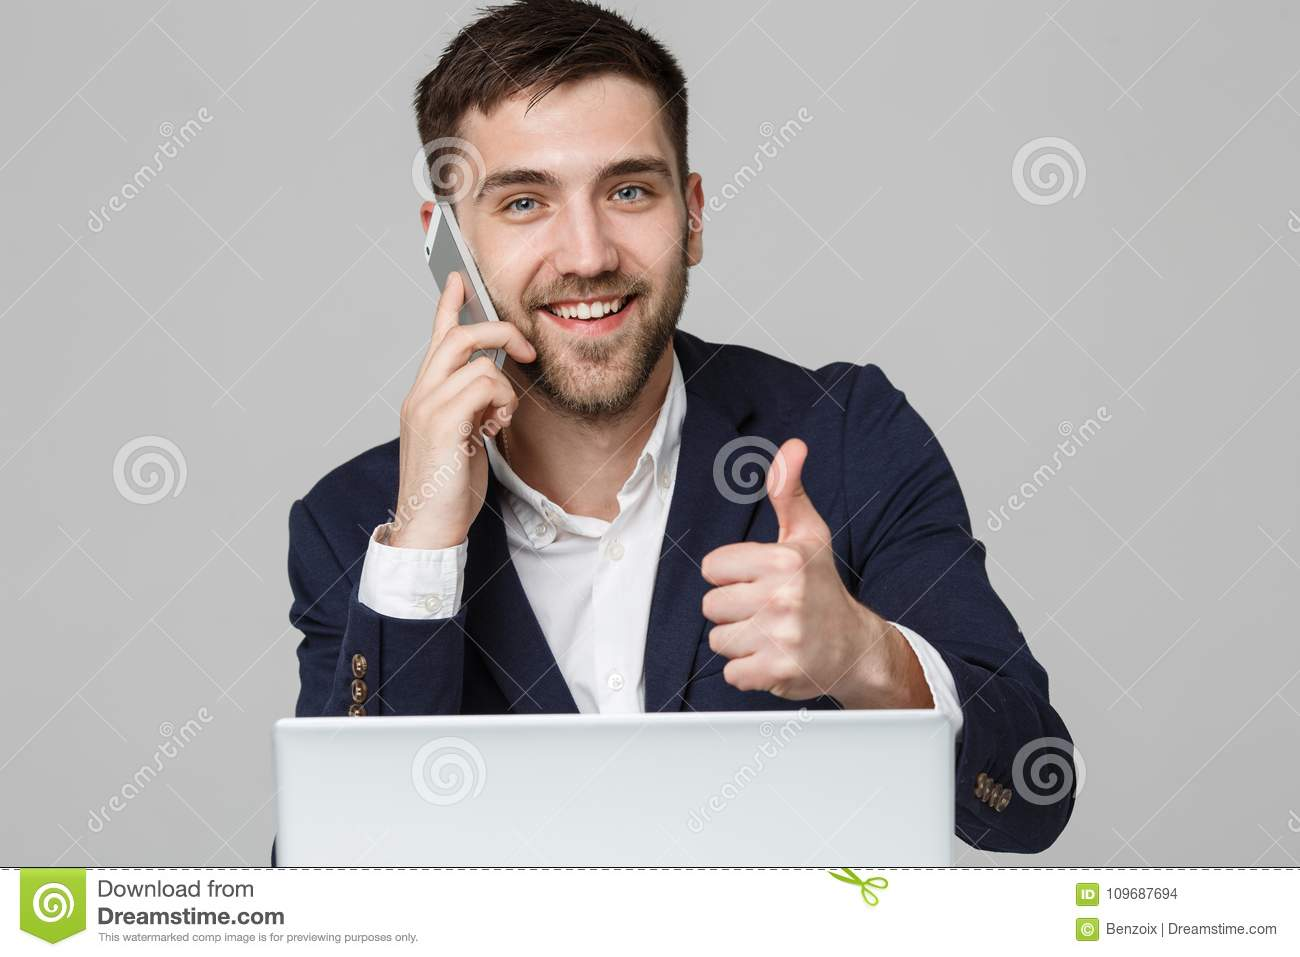 Business Concept - Portrait Handsome Business man showing thump up and smiling confident face in front of his laptop